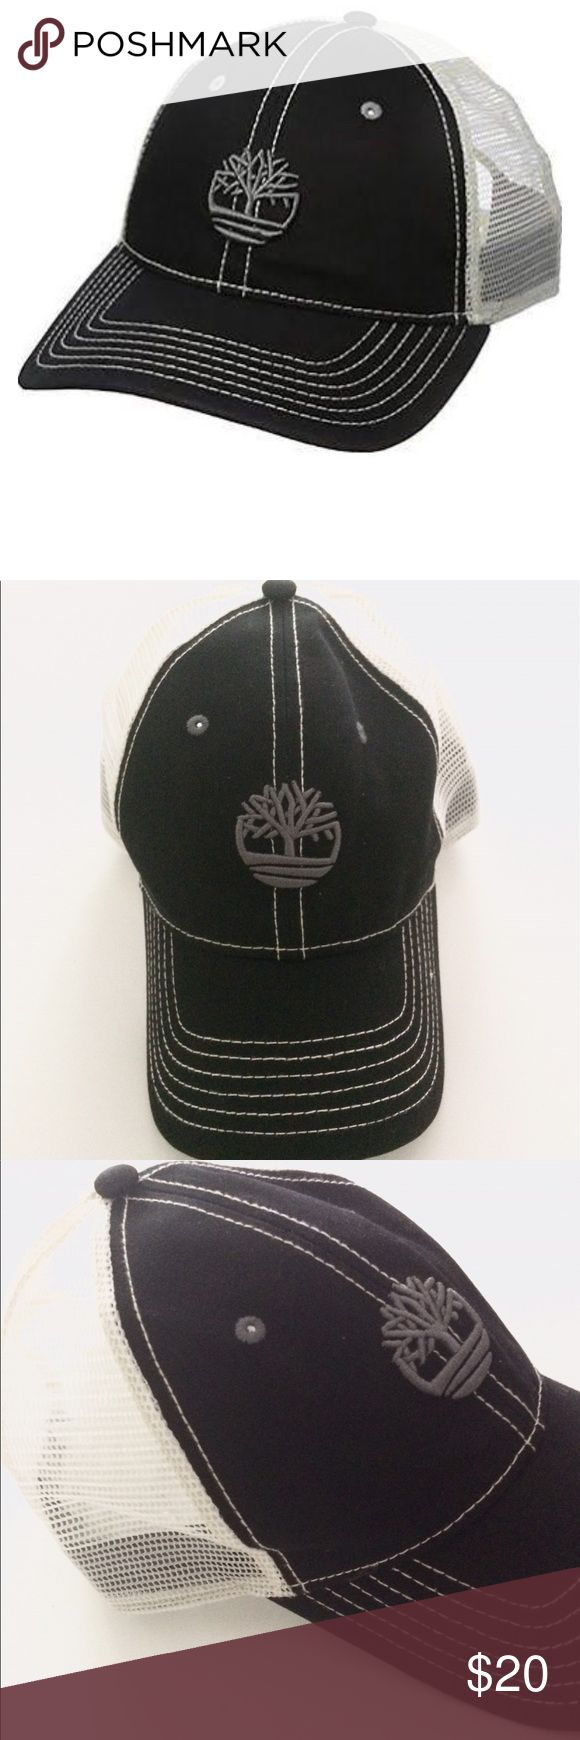 NEW! Timberland Hat Awesome unisex navy and white trucker hat. Cute tree logo on the front. 57% polyester, 43% cotton Adjustable back plastic strap Timberland Accessories Hats